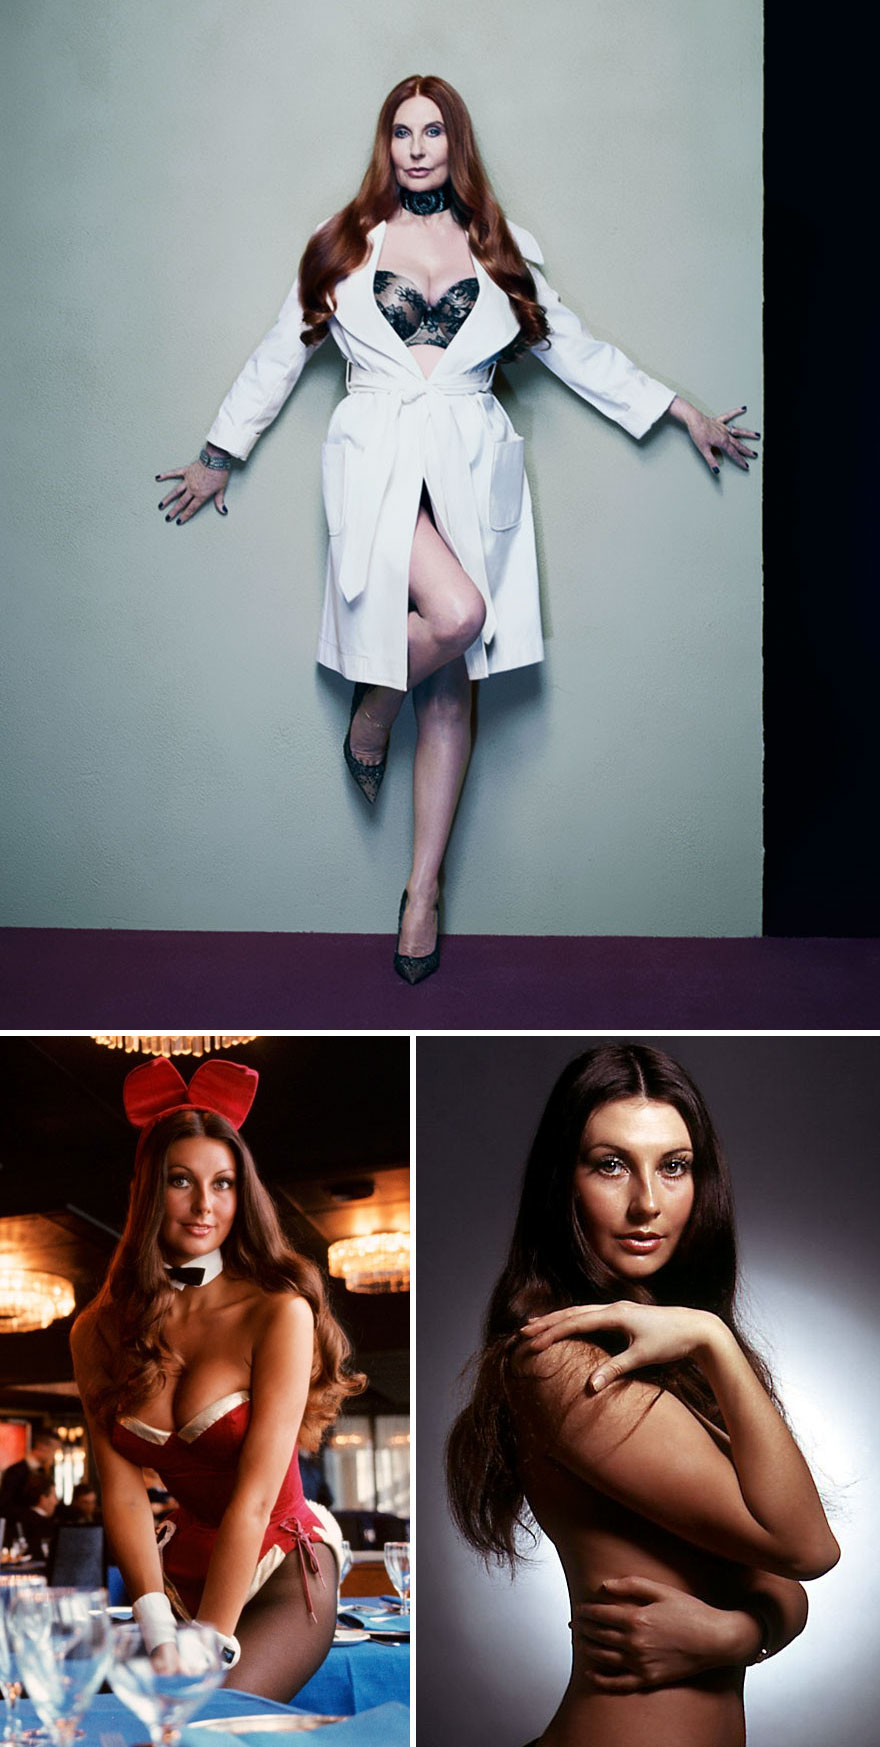 playboy-models-60-years-later-now-and-then-nadav-kander-3